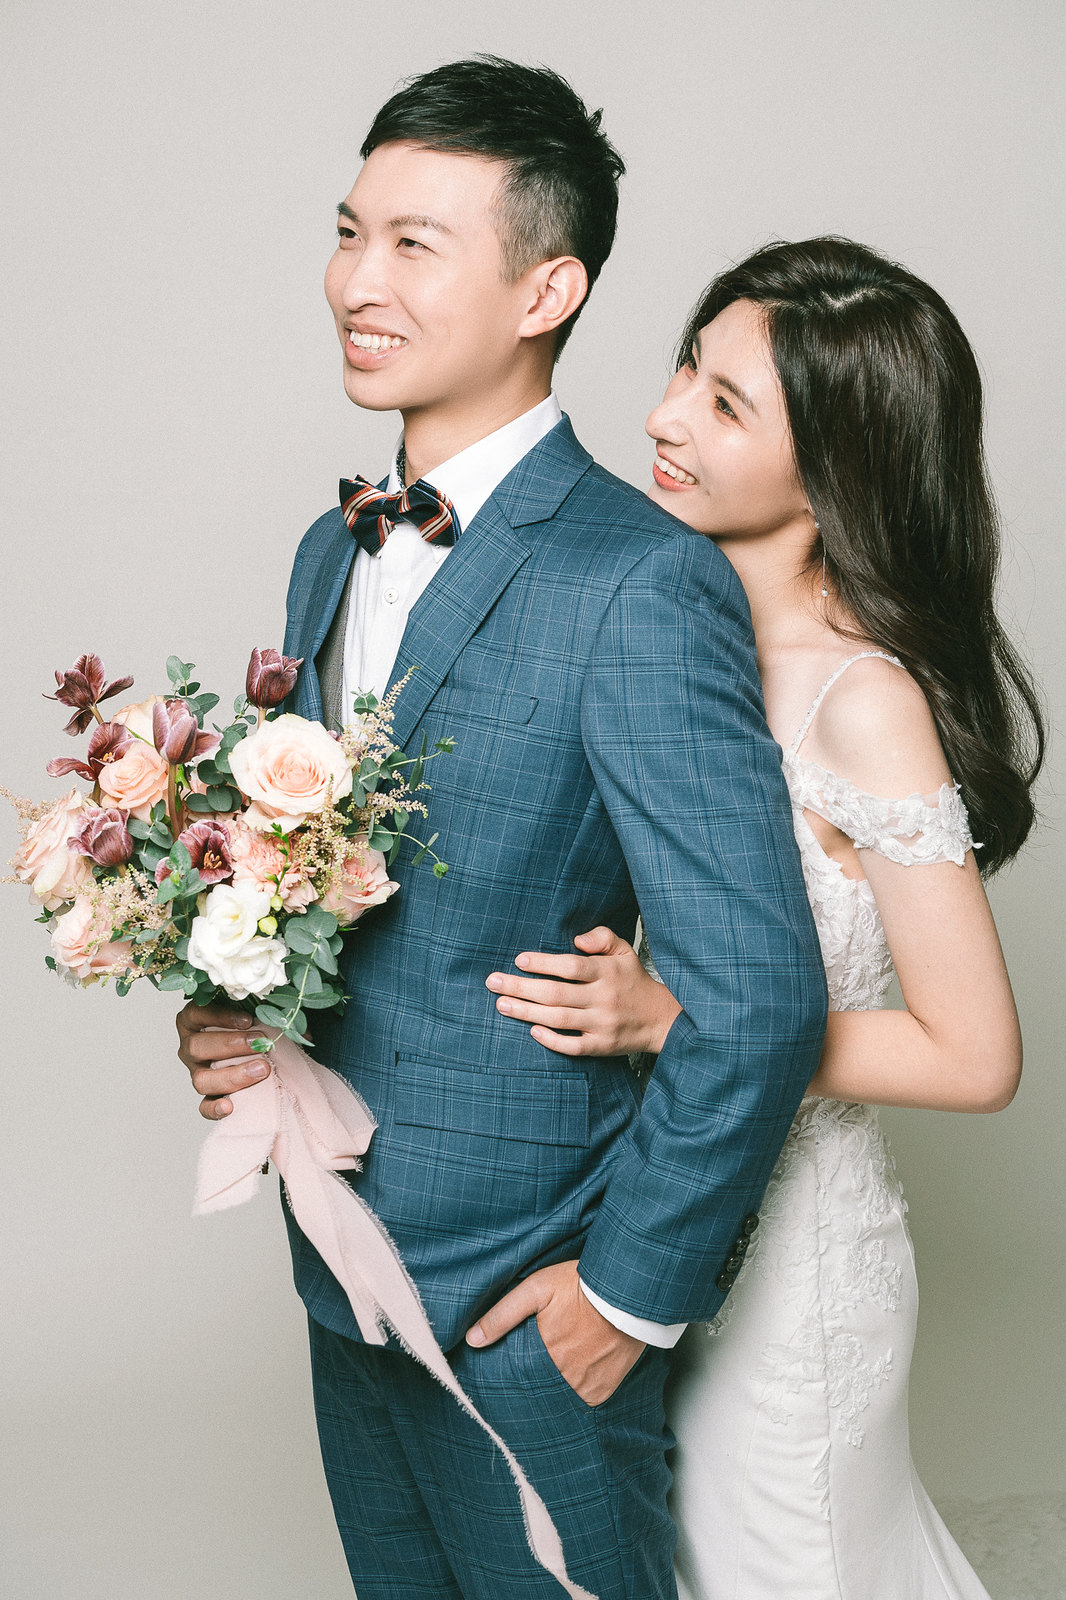 【婚紗】Gene & Renee / 那些美好的回憶點 / EASTERN WEDDING studio